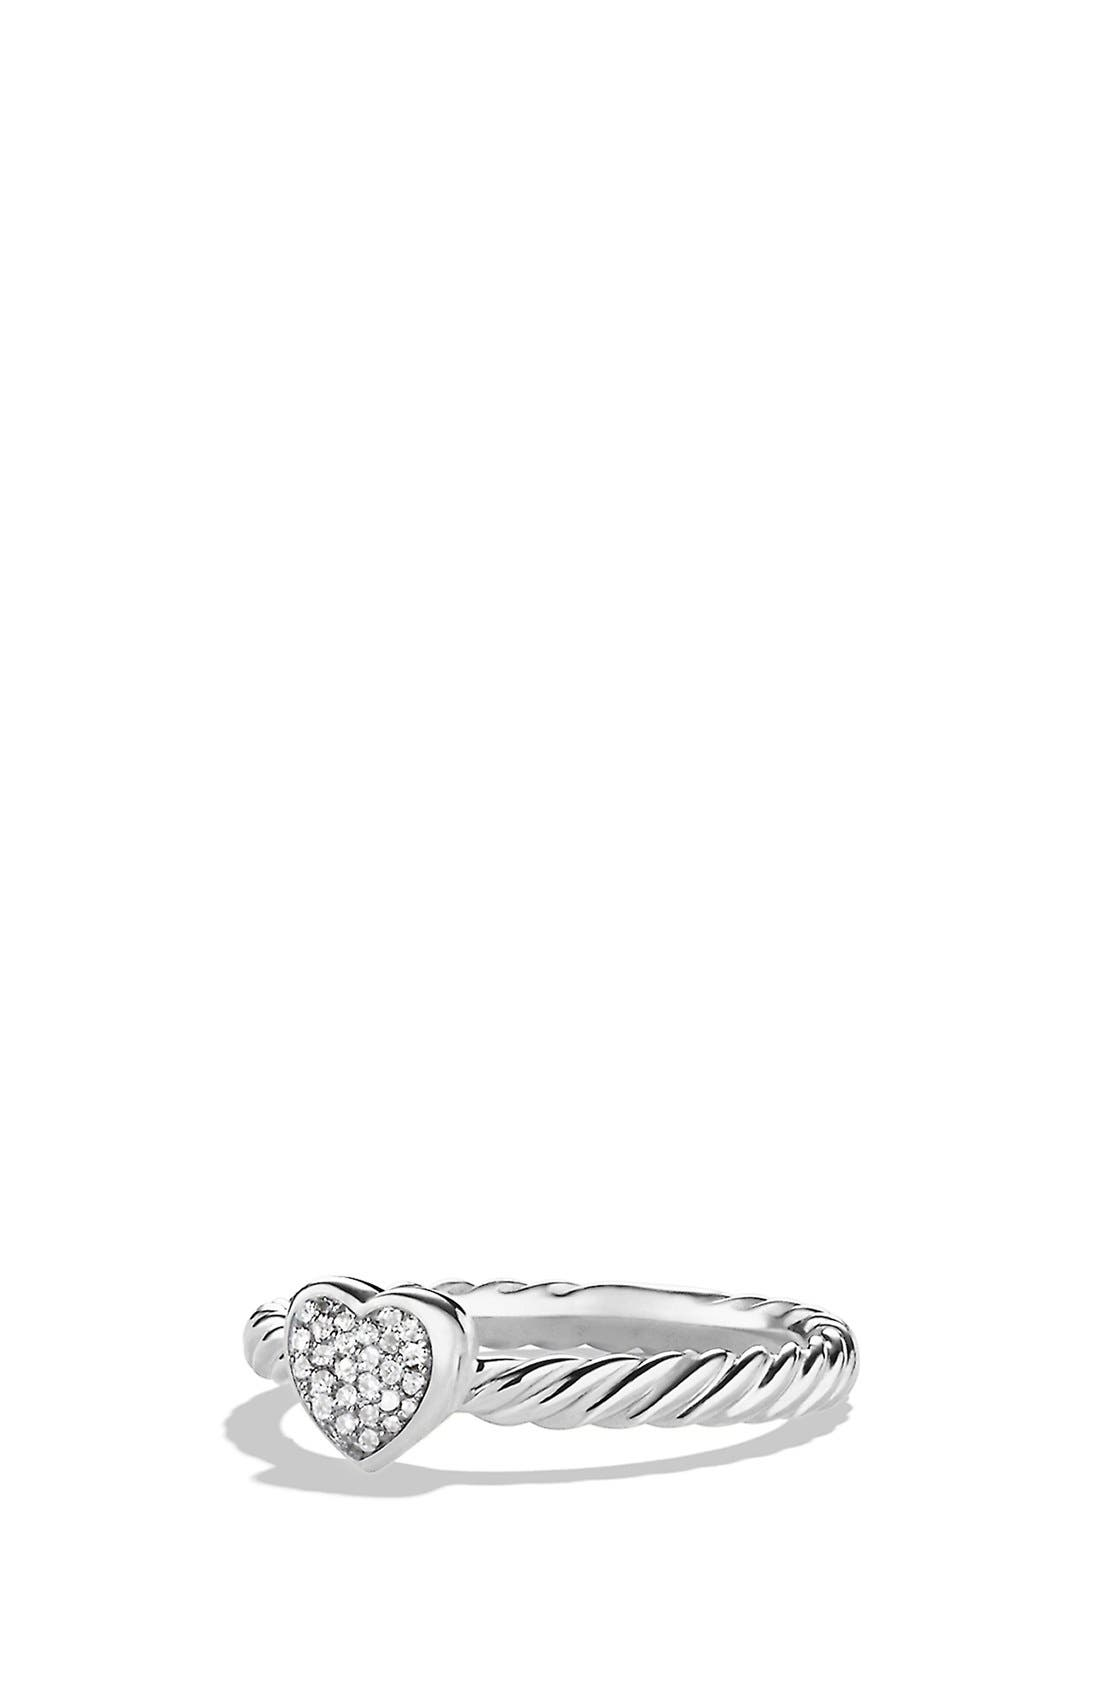 Main Image - David Yurman 'Cable Collectibles' Heart Ring with Diamonds